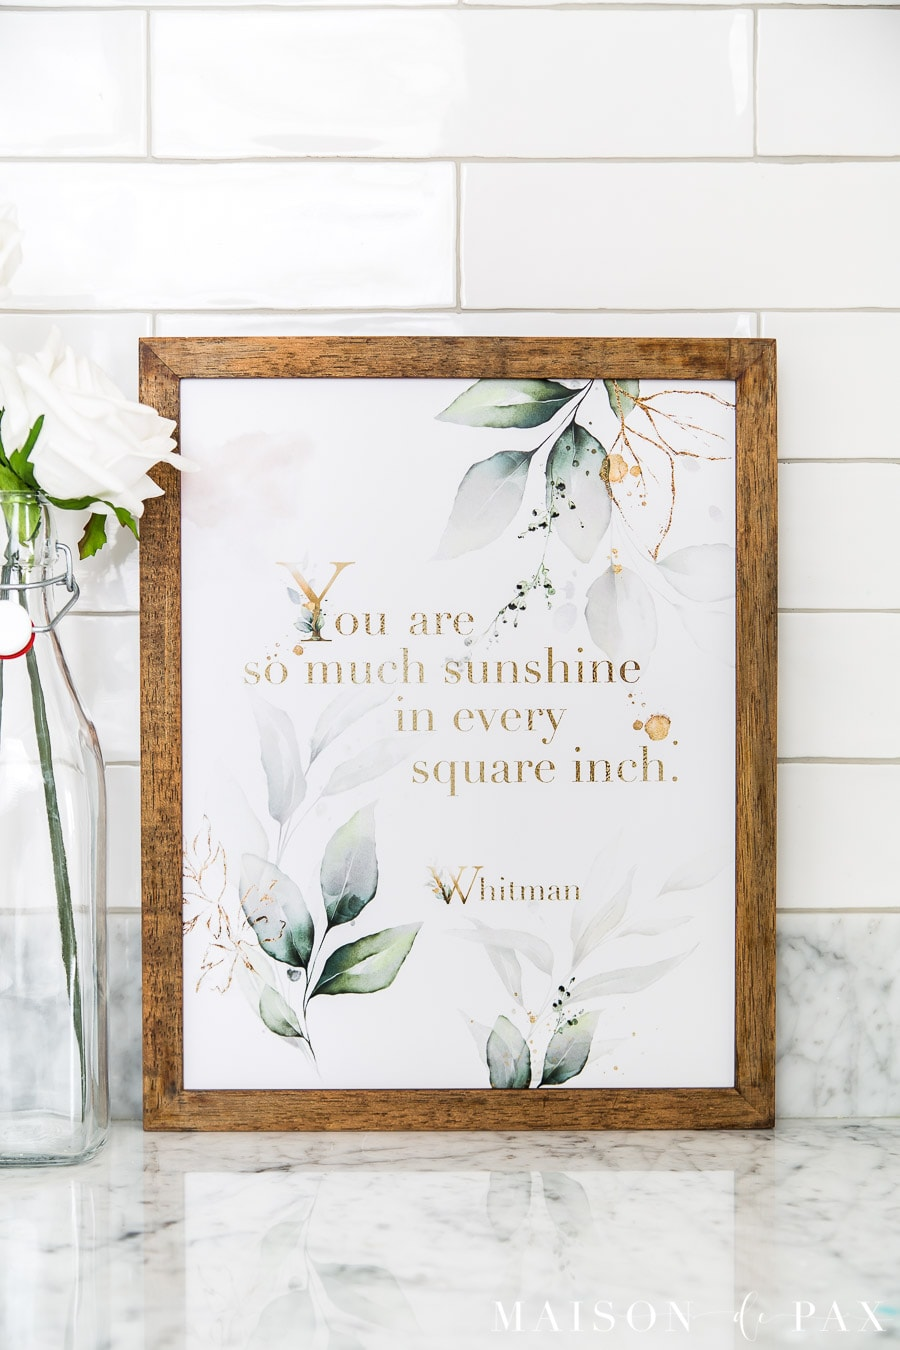 photo relating to Quotes Printable identified as As a result Significantly Sun Printable Wall Artwork - Maison de Pax